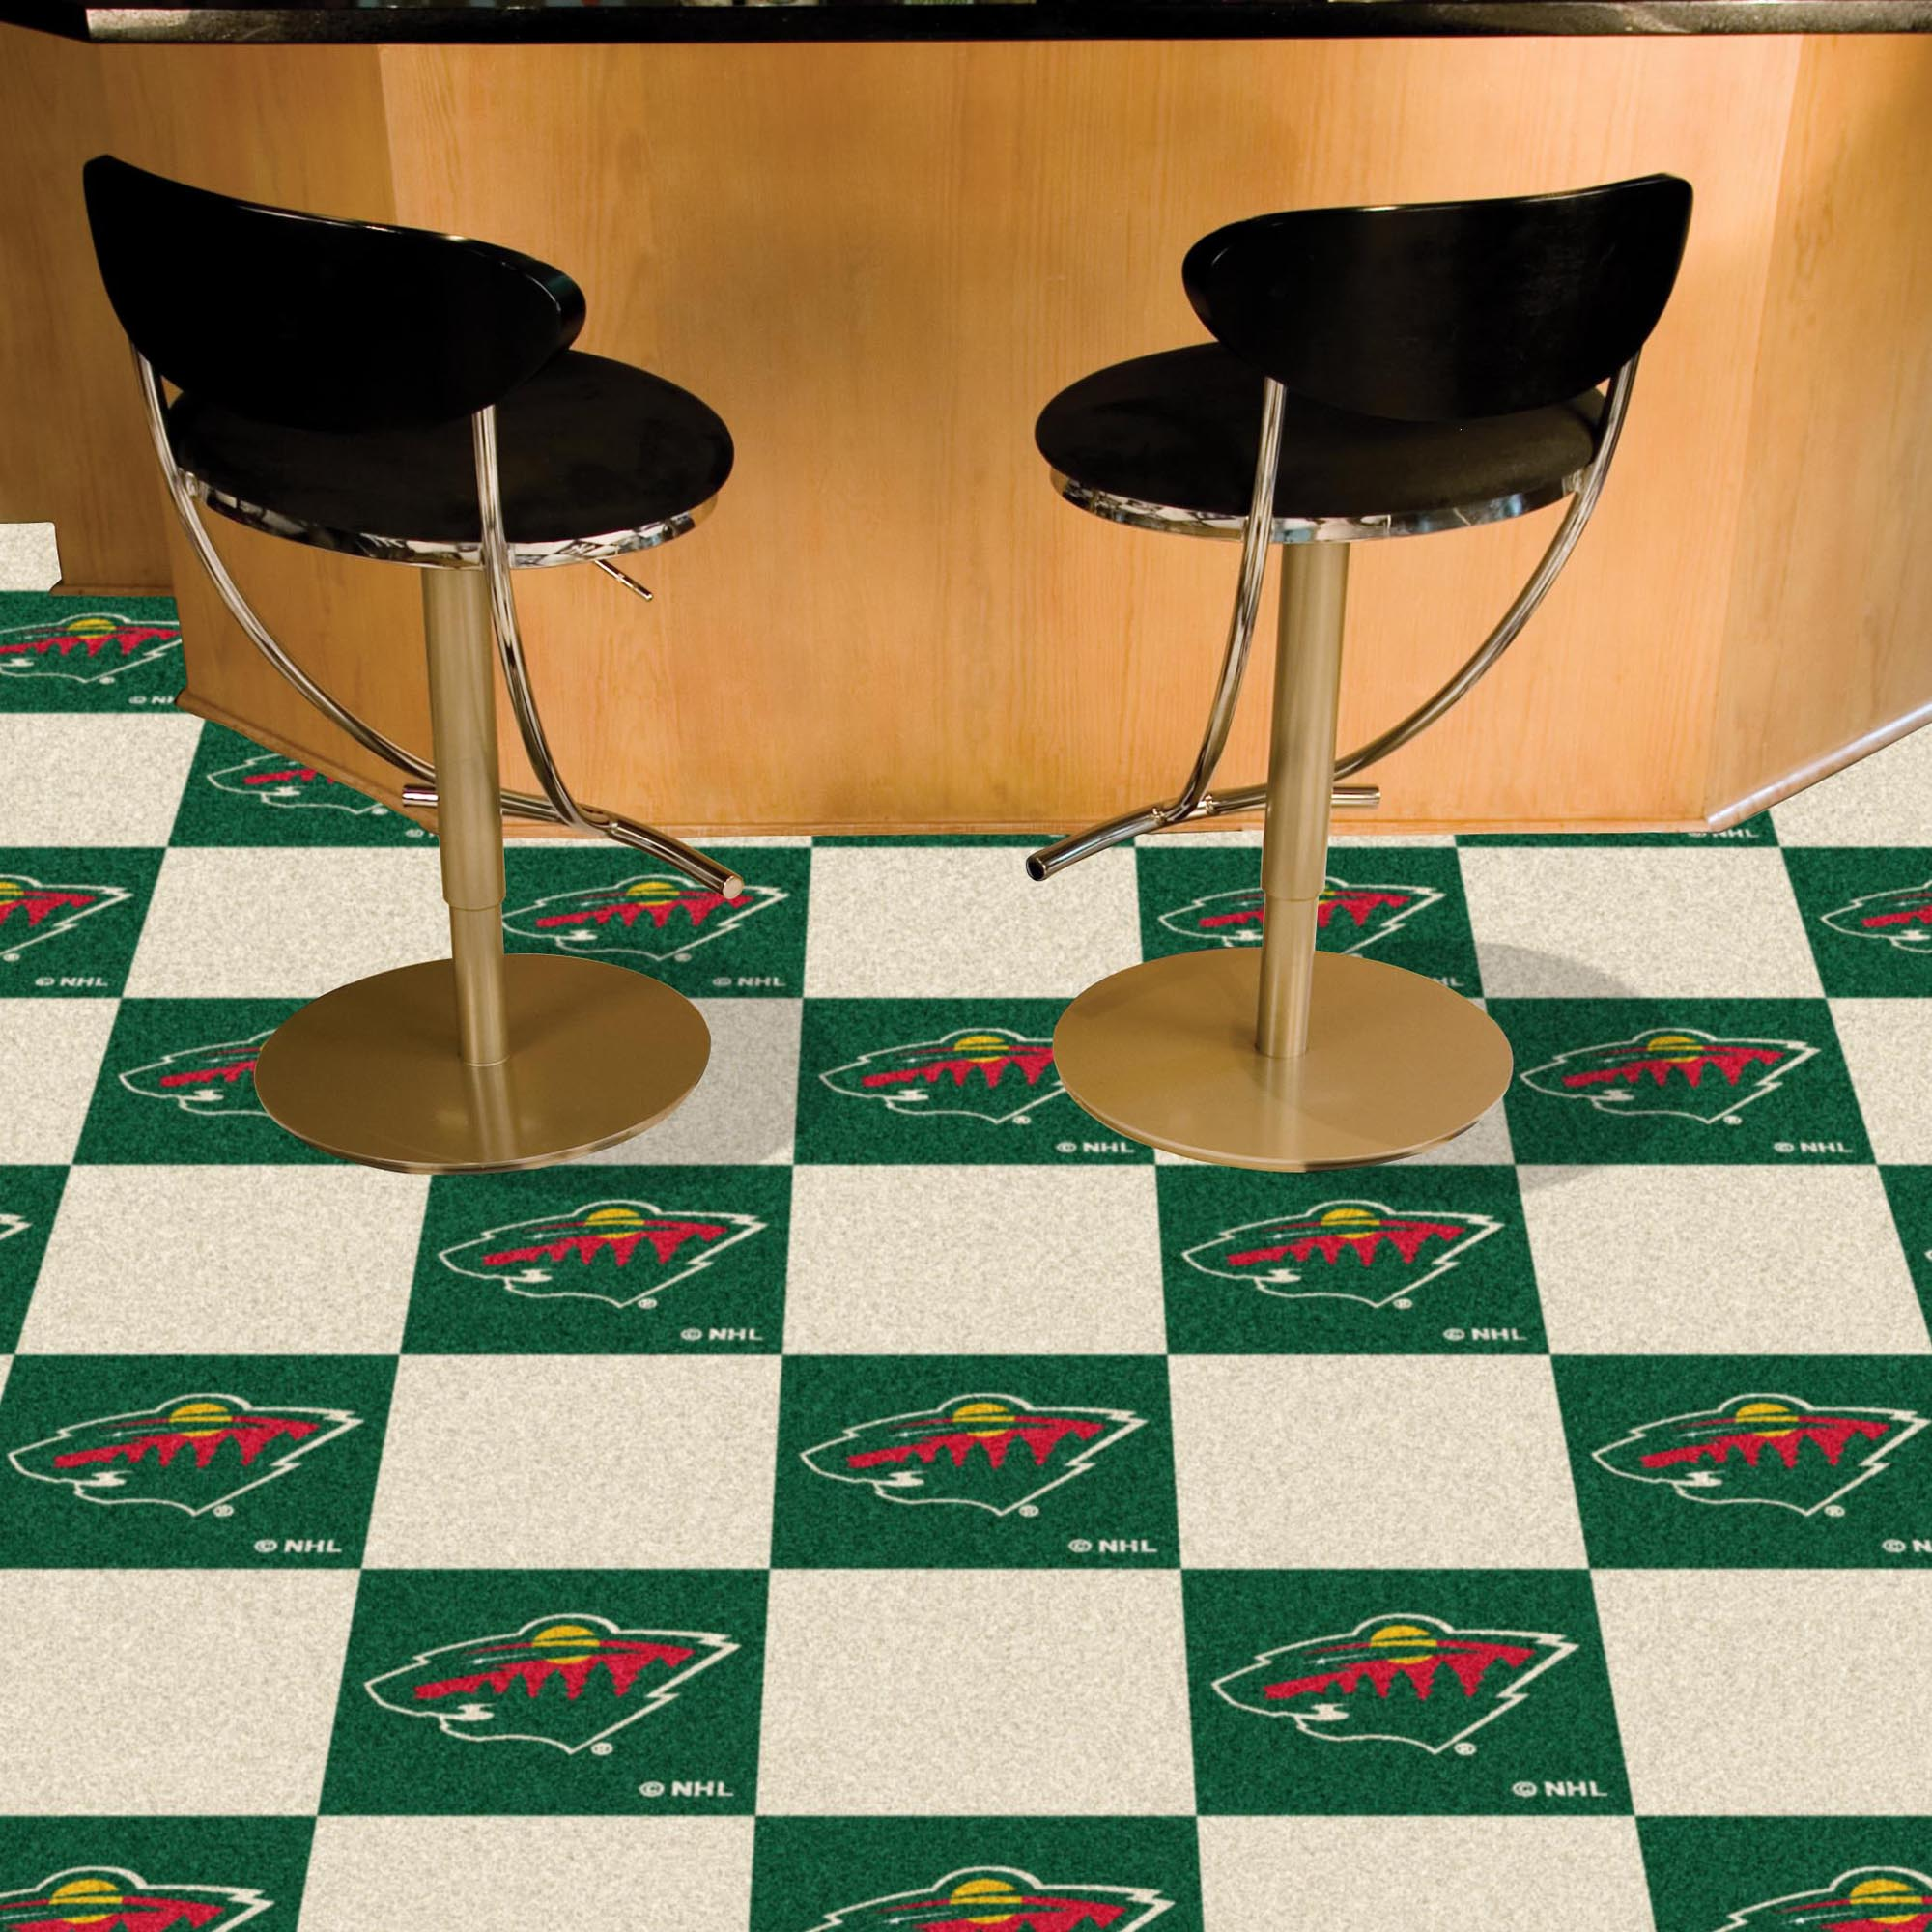 Minnesota Wild Carpet Tiles 18x18 in.